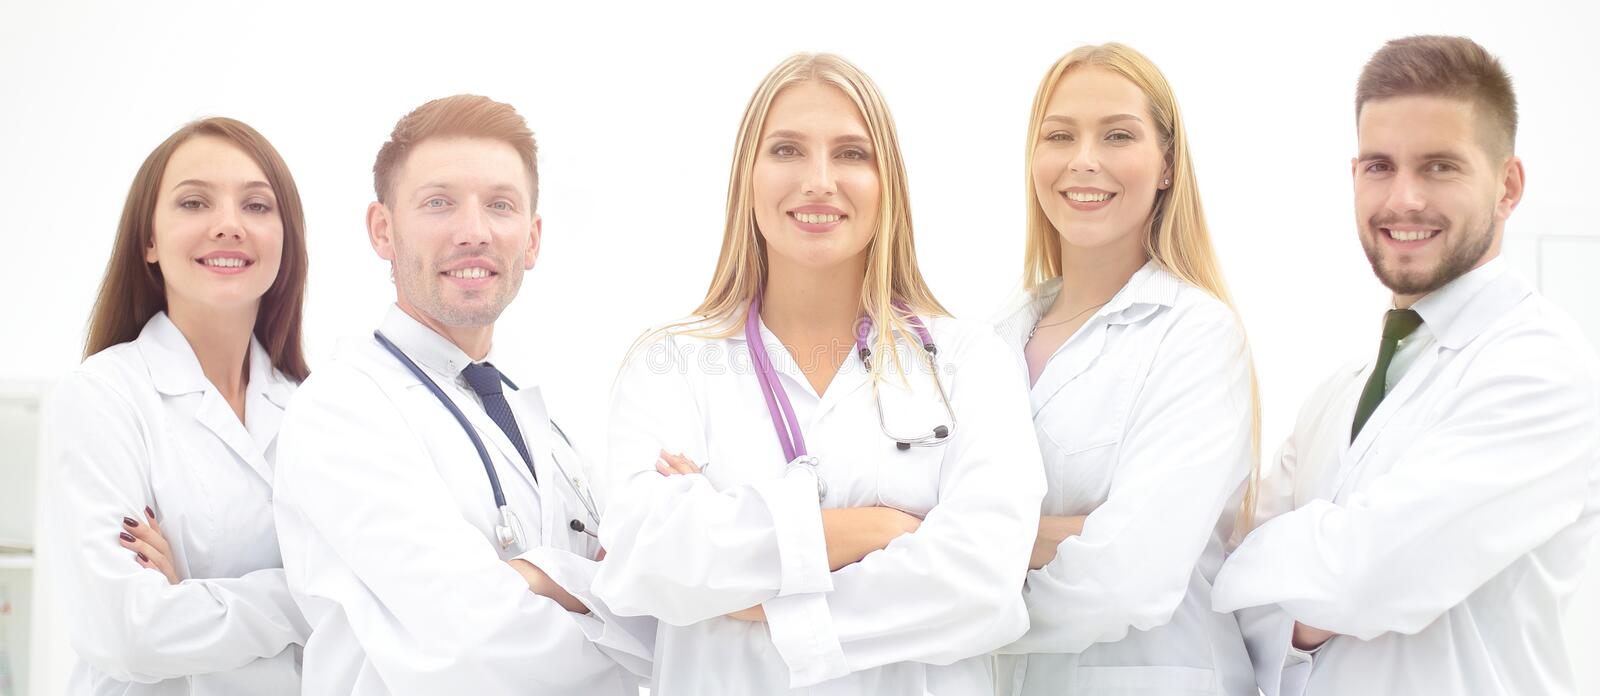 Group portrait of a professional medical team. The concept of health royalty free stock photo